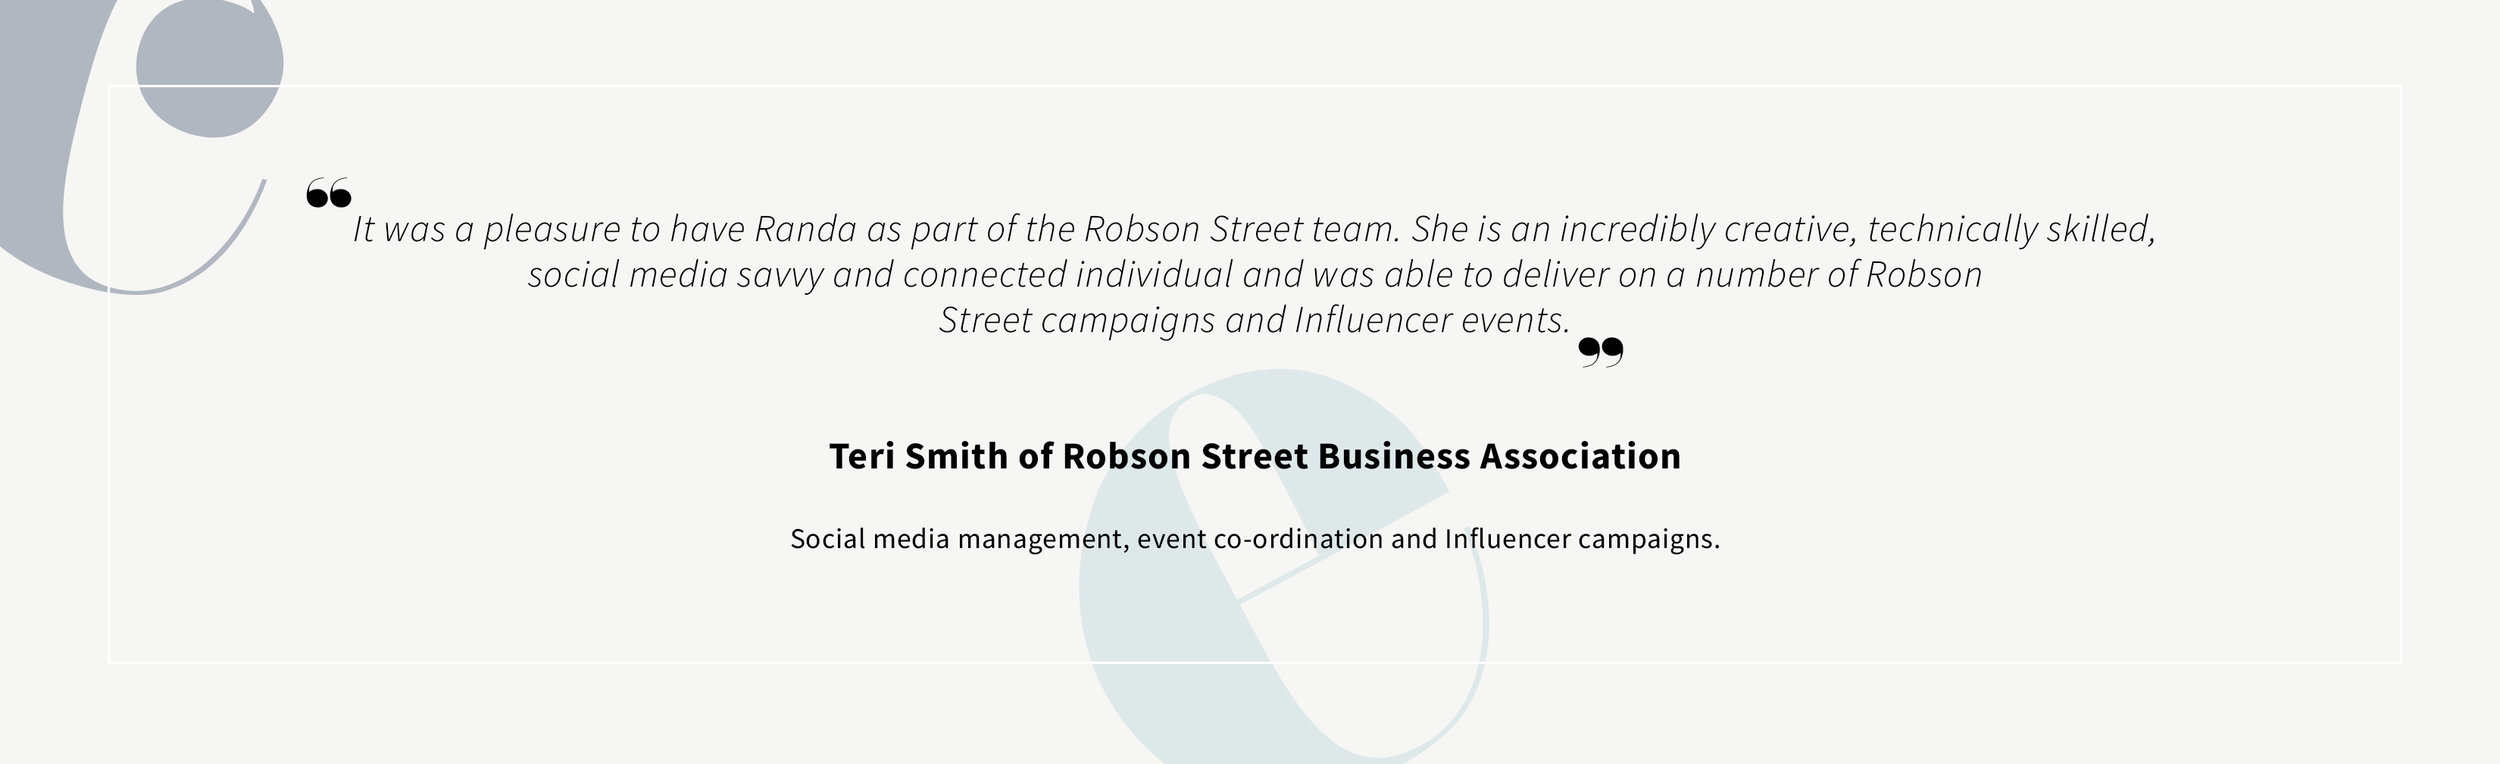 Teri Smith Robson Street Business Association Testimonial.jpg